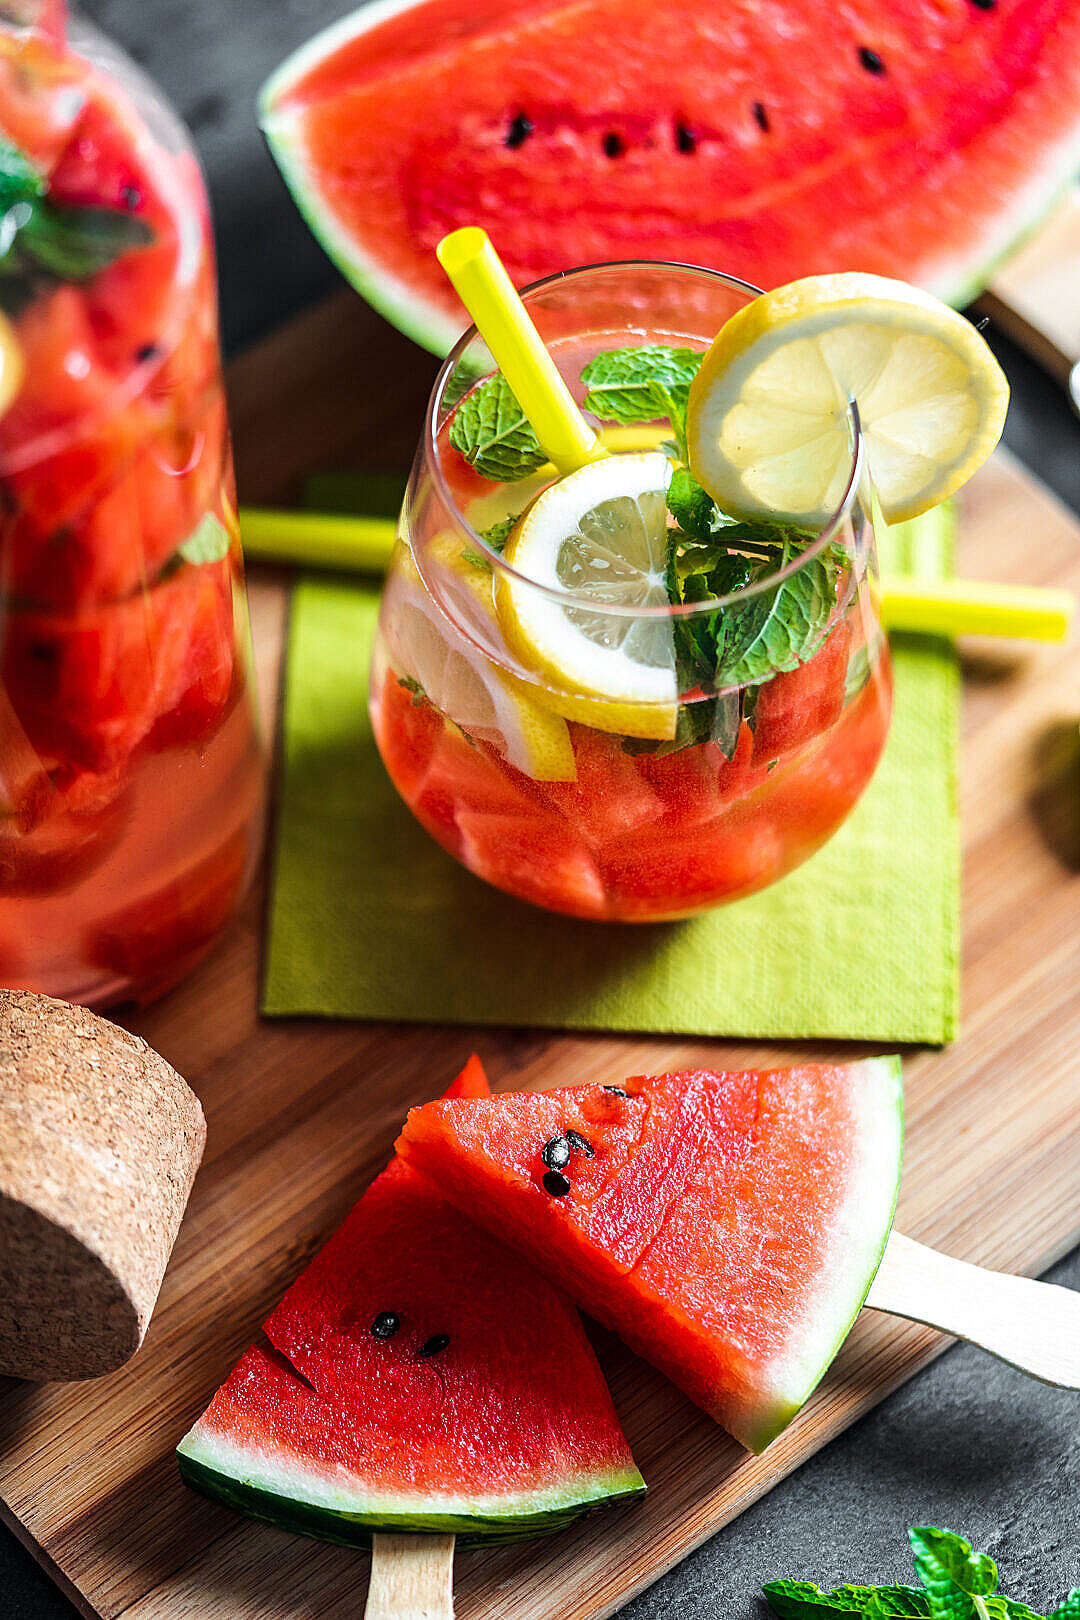 Download Watermelon Healthy Snack and Drink FREE Stock Photo